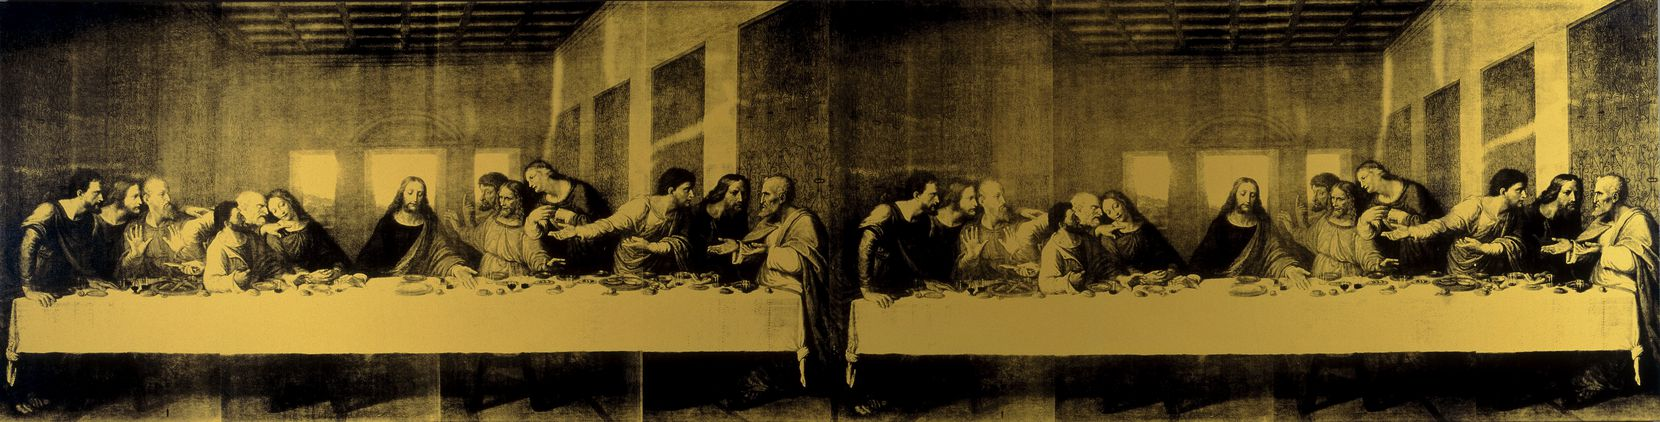 "Andy Warhol, ""The Last Supper, 1986,"" The Baltimore Museum of Art."